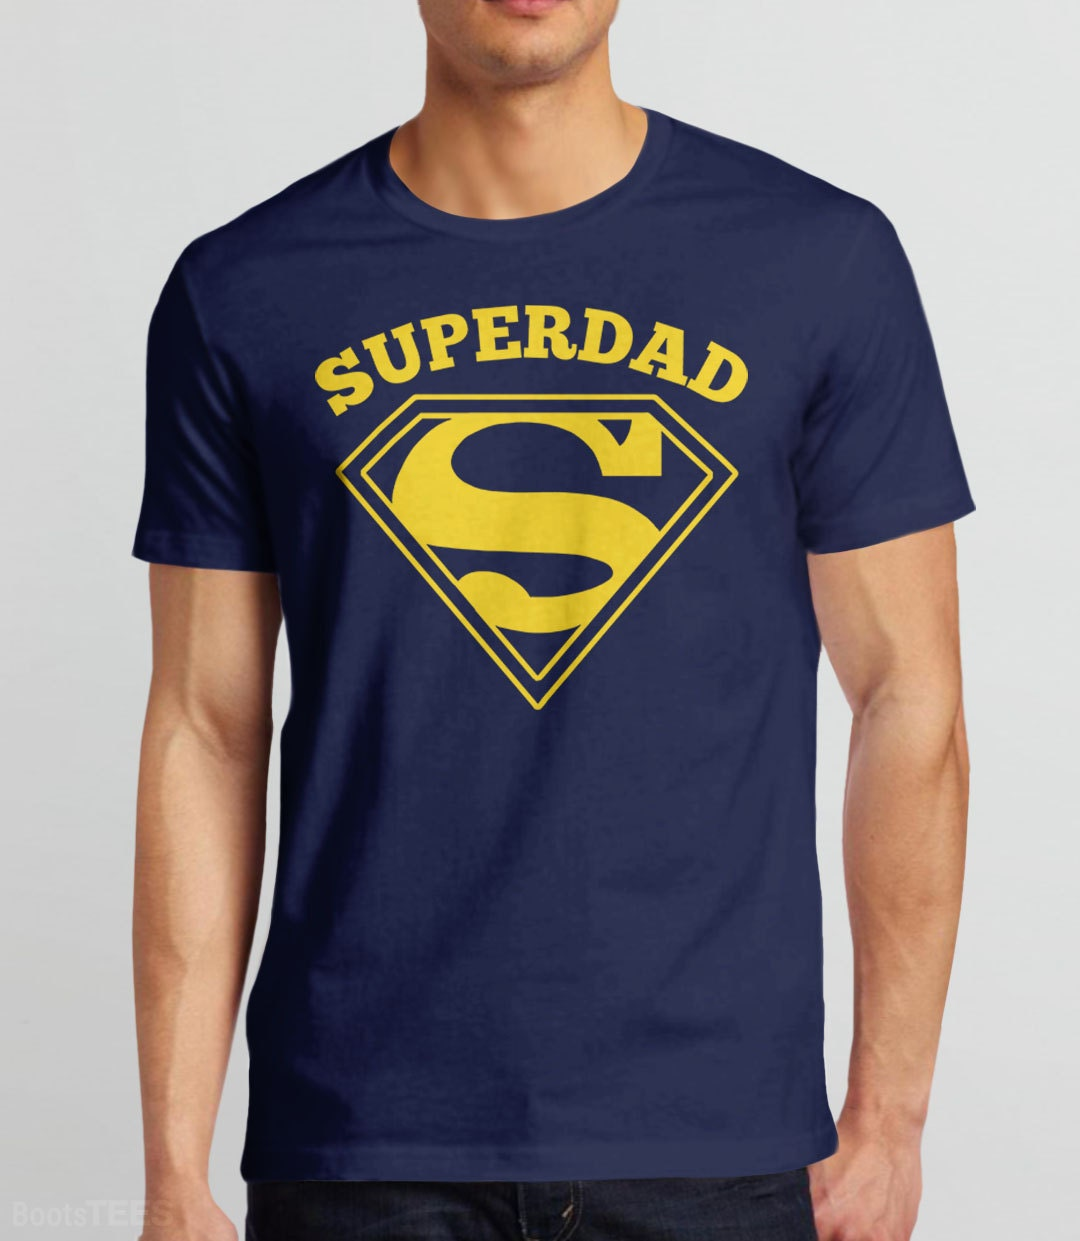 Super dad shirt dad gift for father gift for dad t shirt T shirts for dad